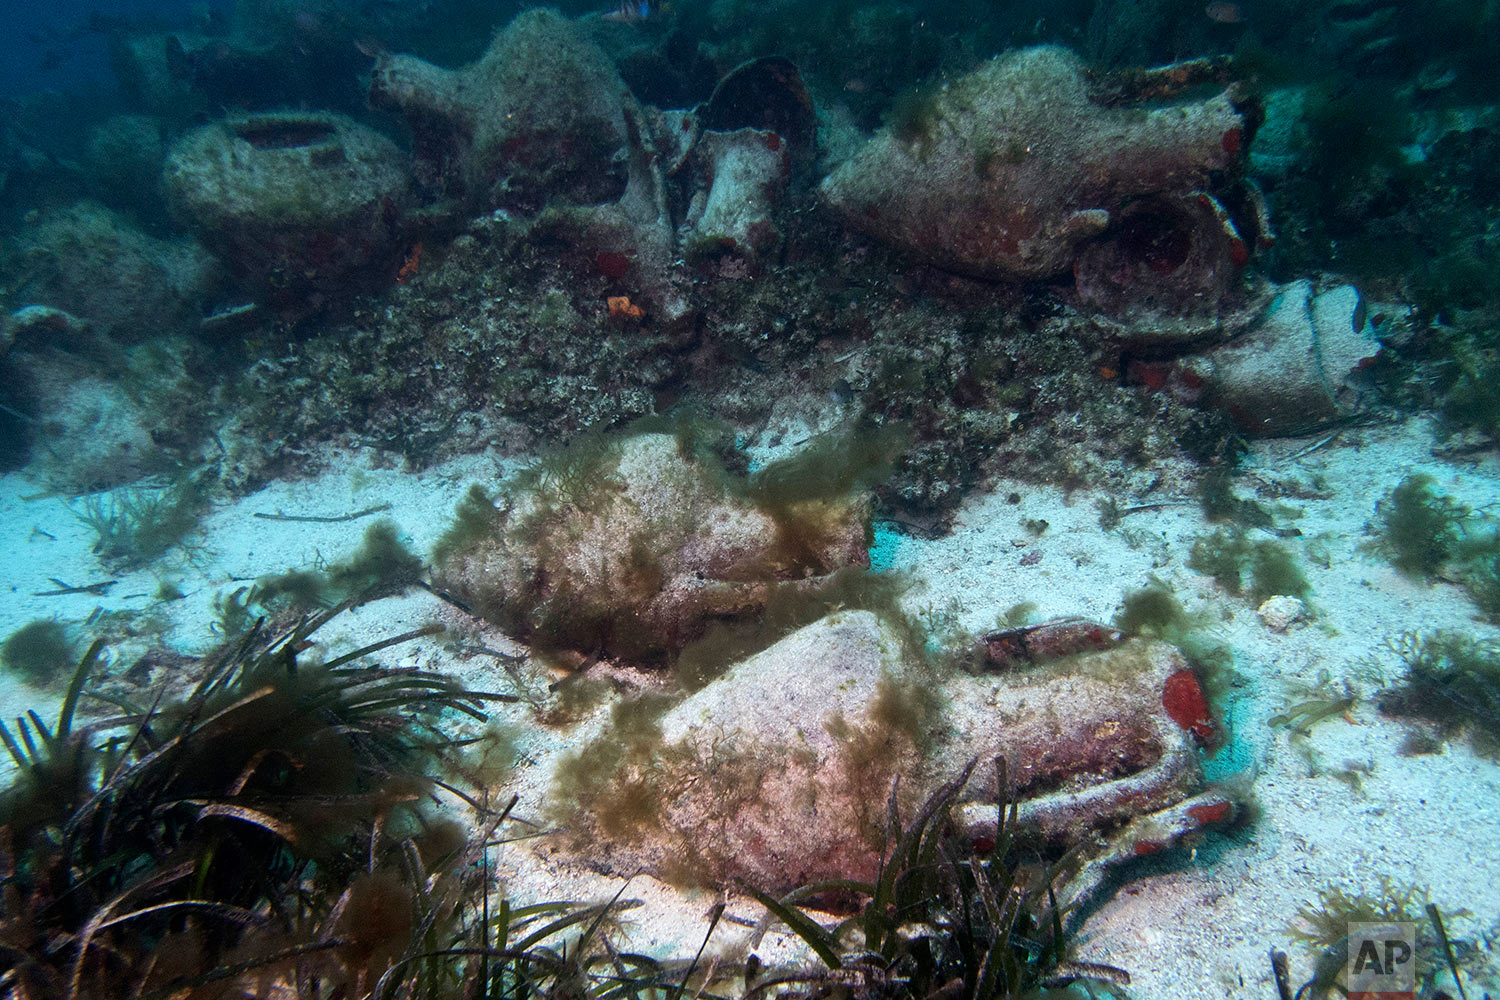 Ancient amphoras lie at the bottom of the sea near the coast of Peristera, Greece, April 7, 2019. (AP Photo/Elena Becatoros)